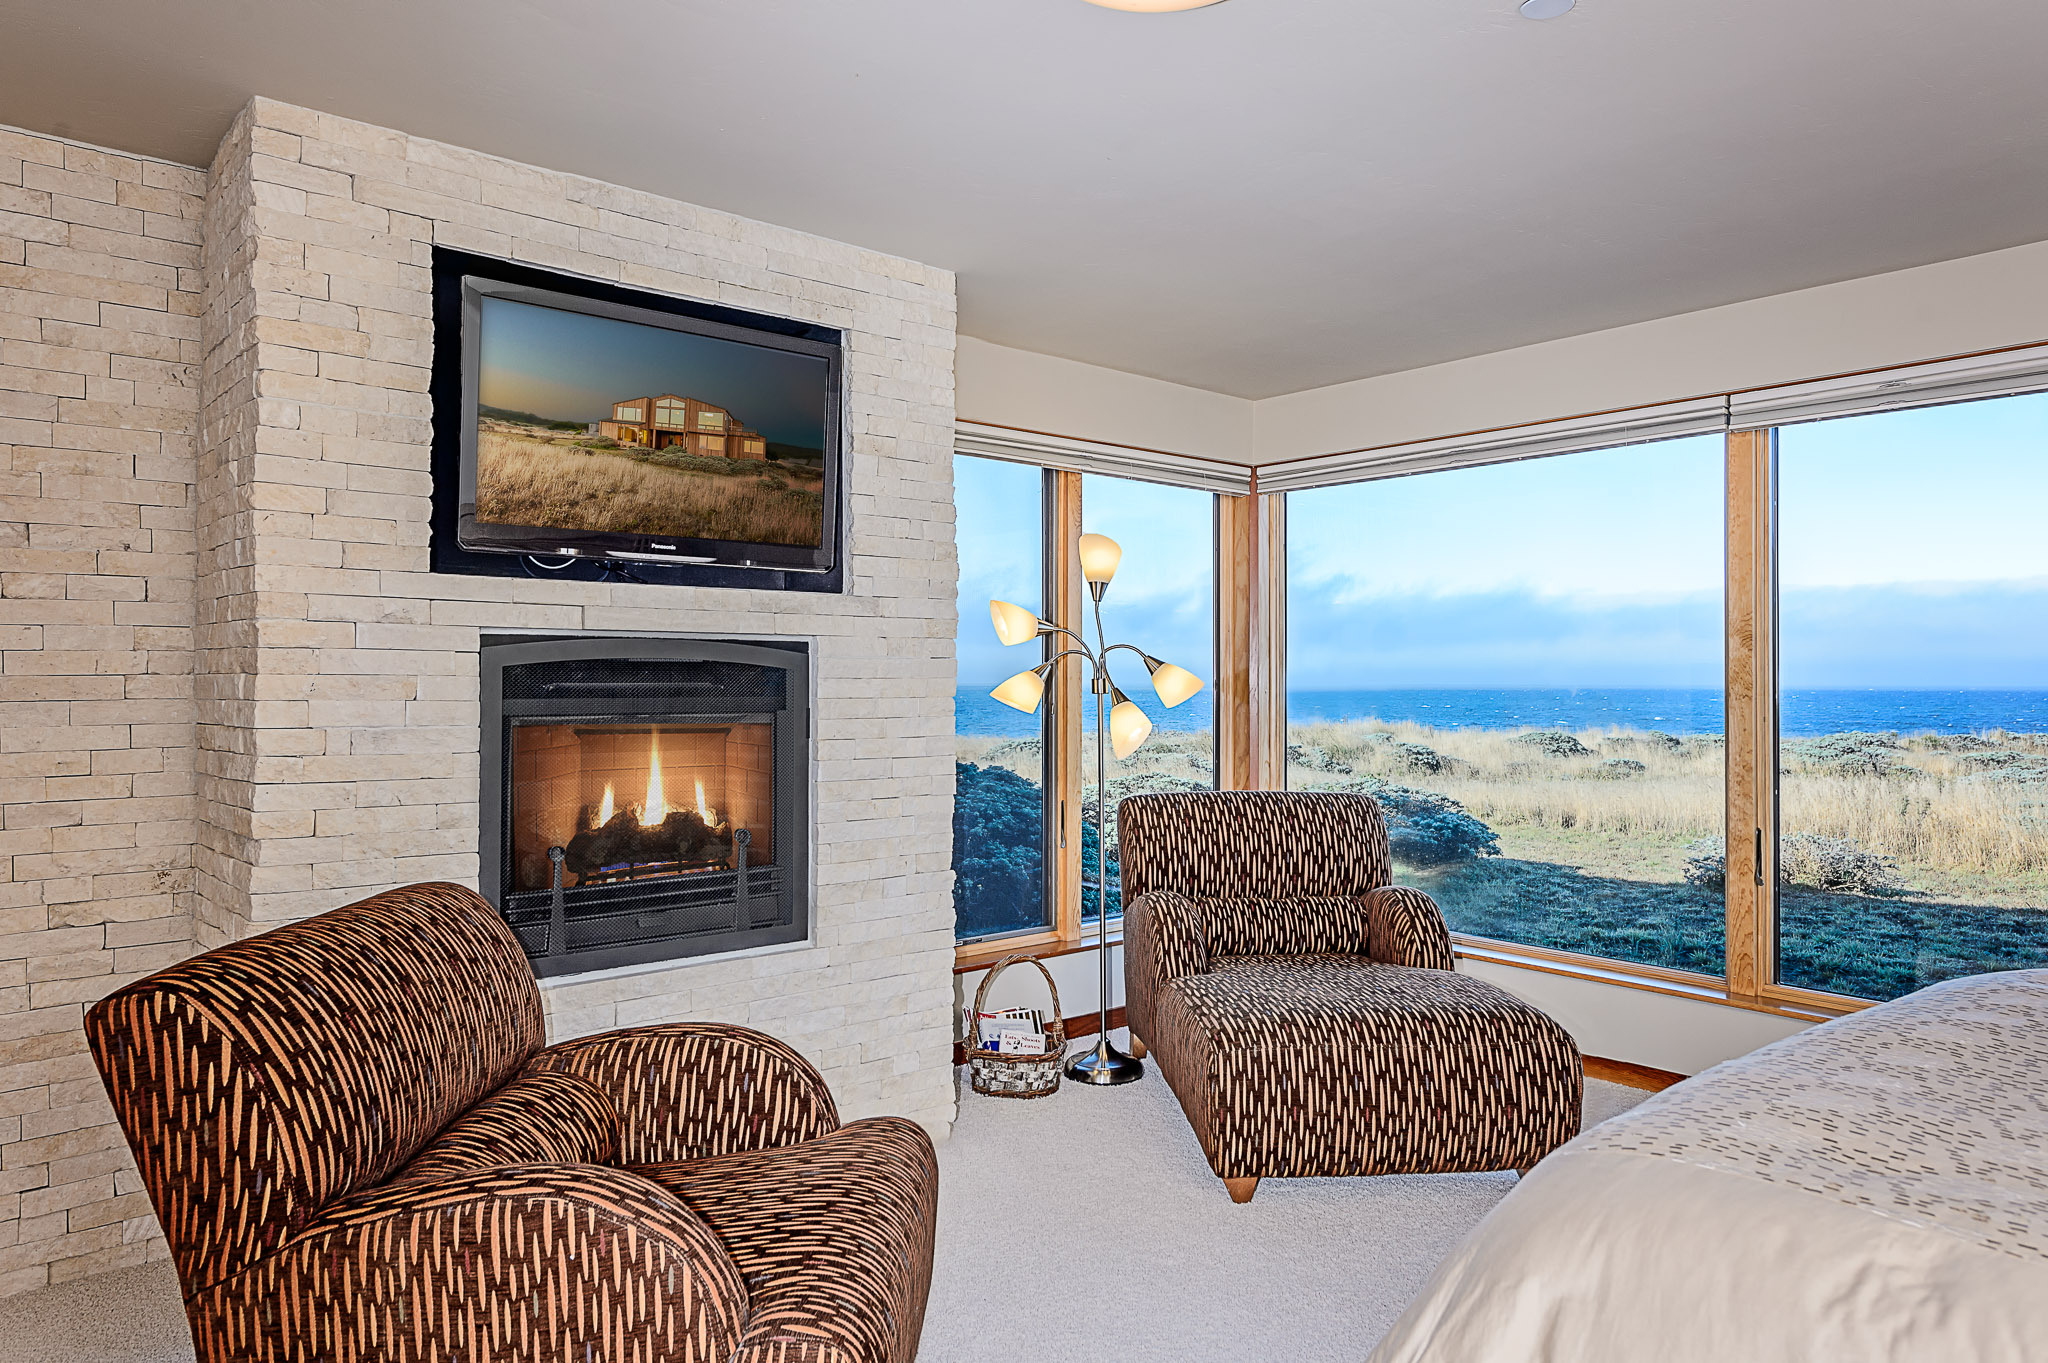 Sea ranch real estate photography 42145 rock cod sea for Master bedroom corner fireplace